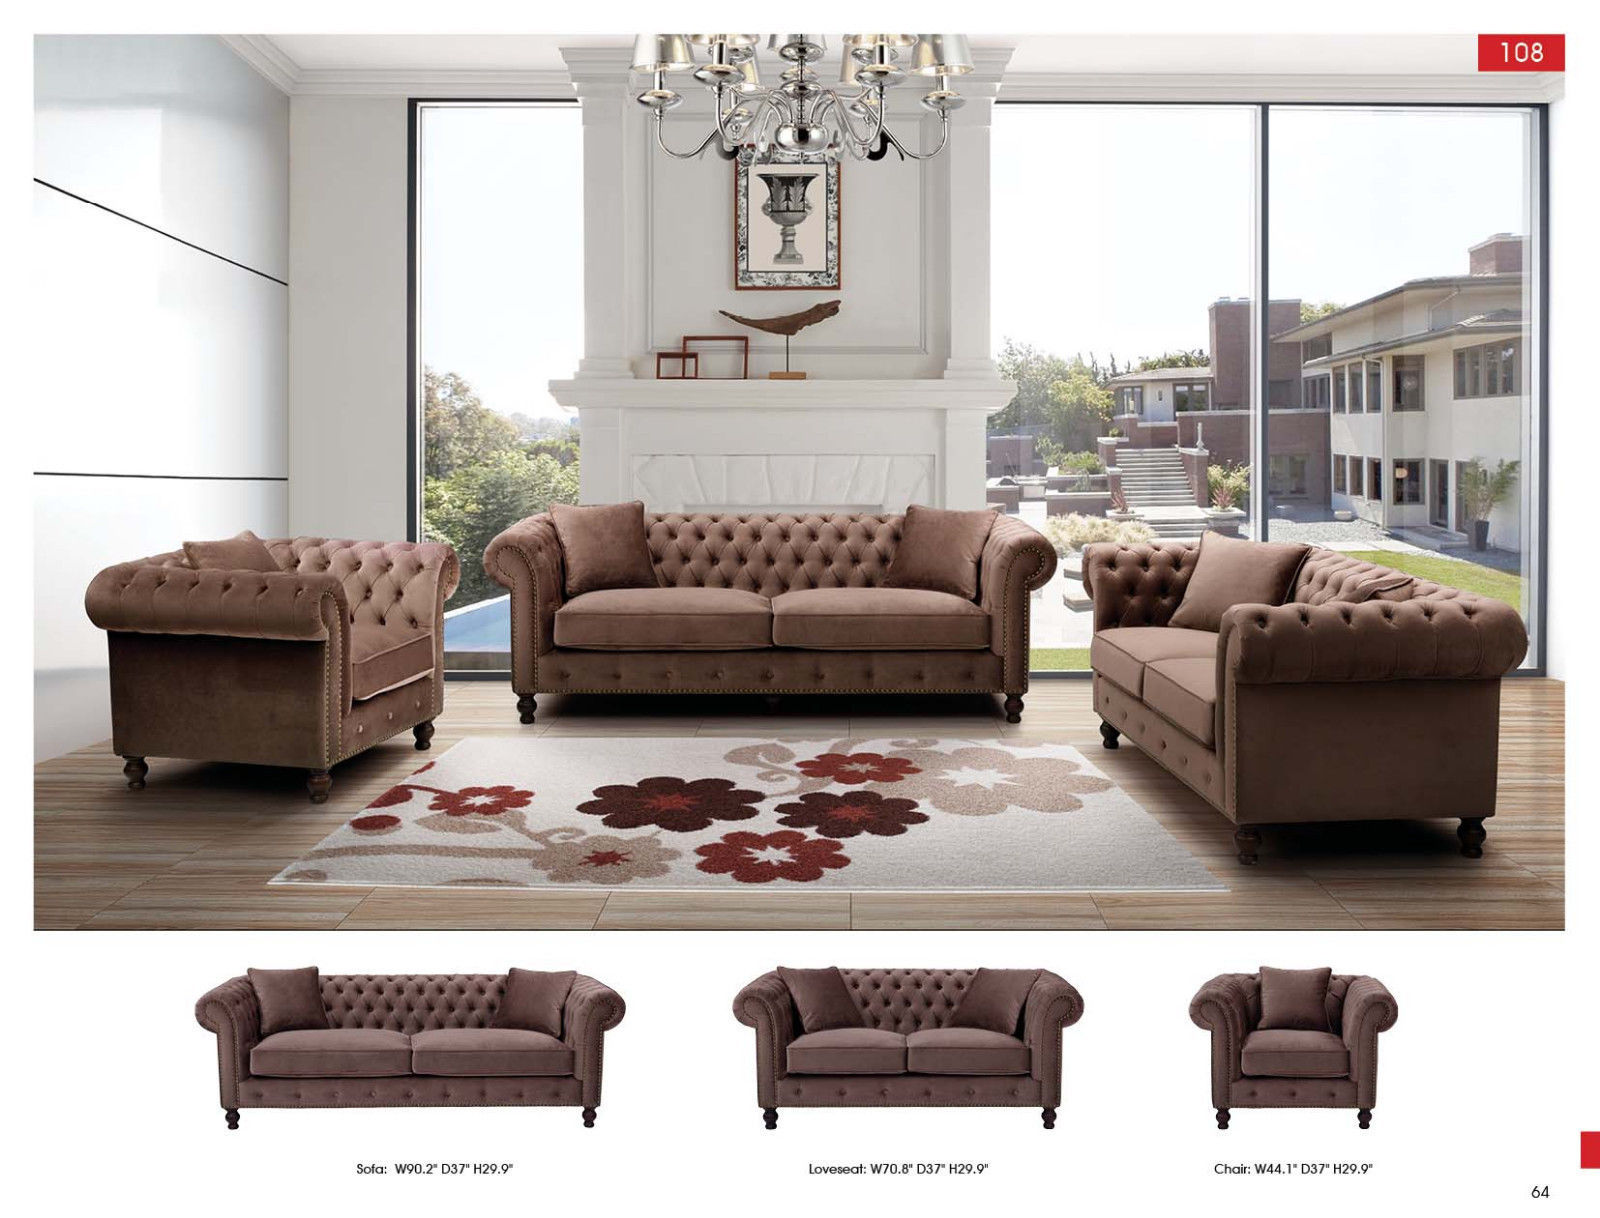 ESF 108 Brown Fabric Living Room Sofa Set 3pc. Traditional Upholstery Tufted